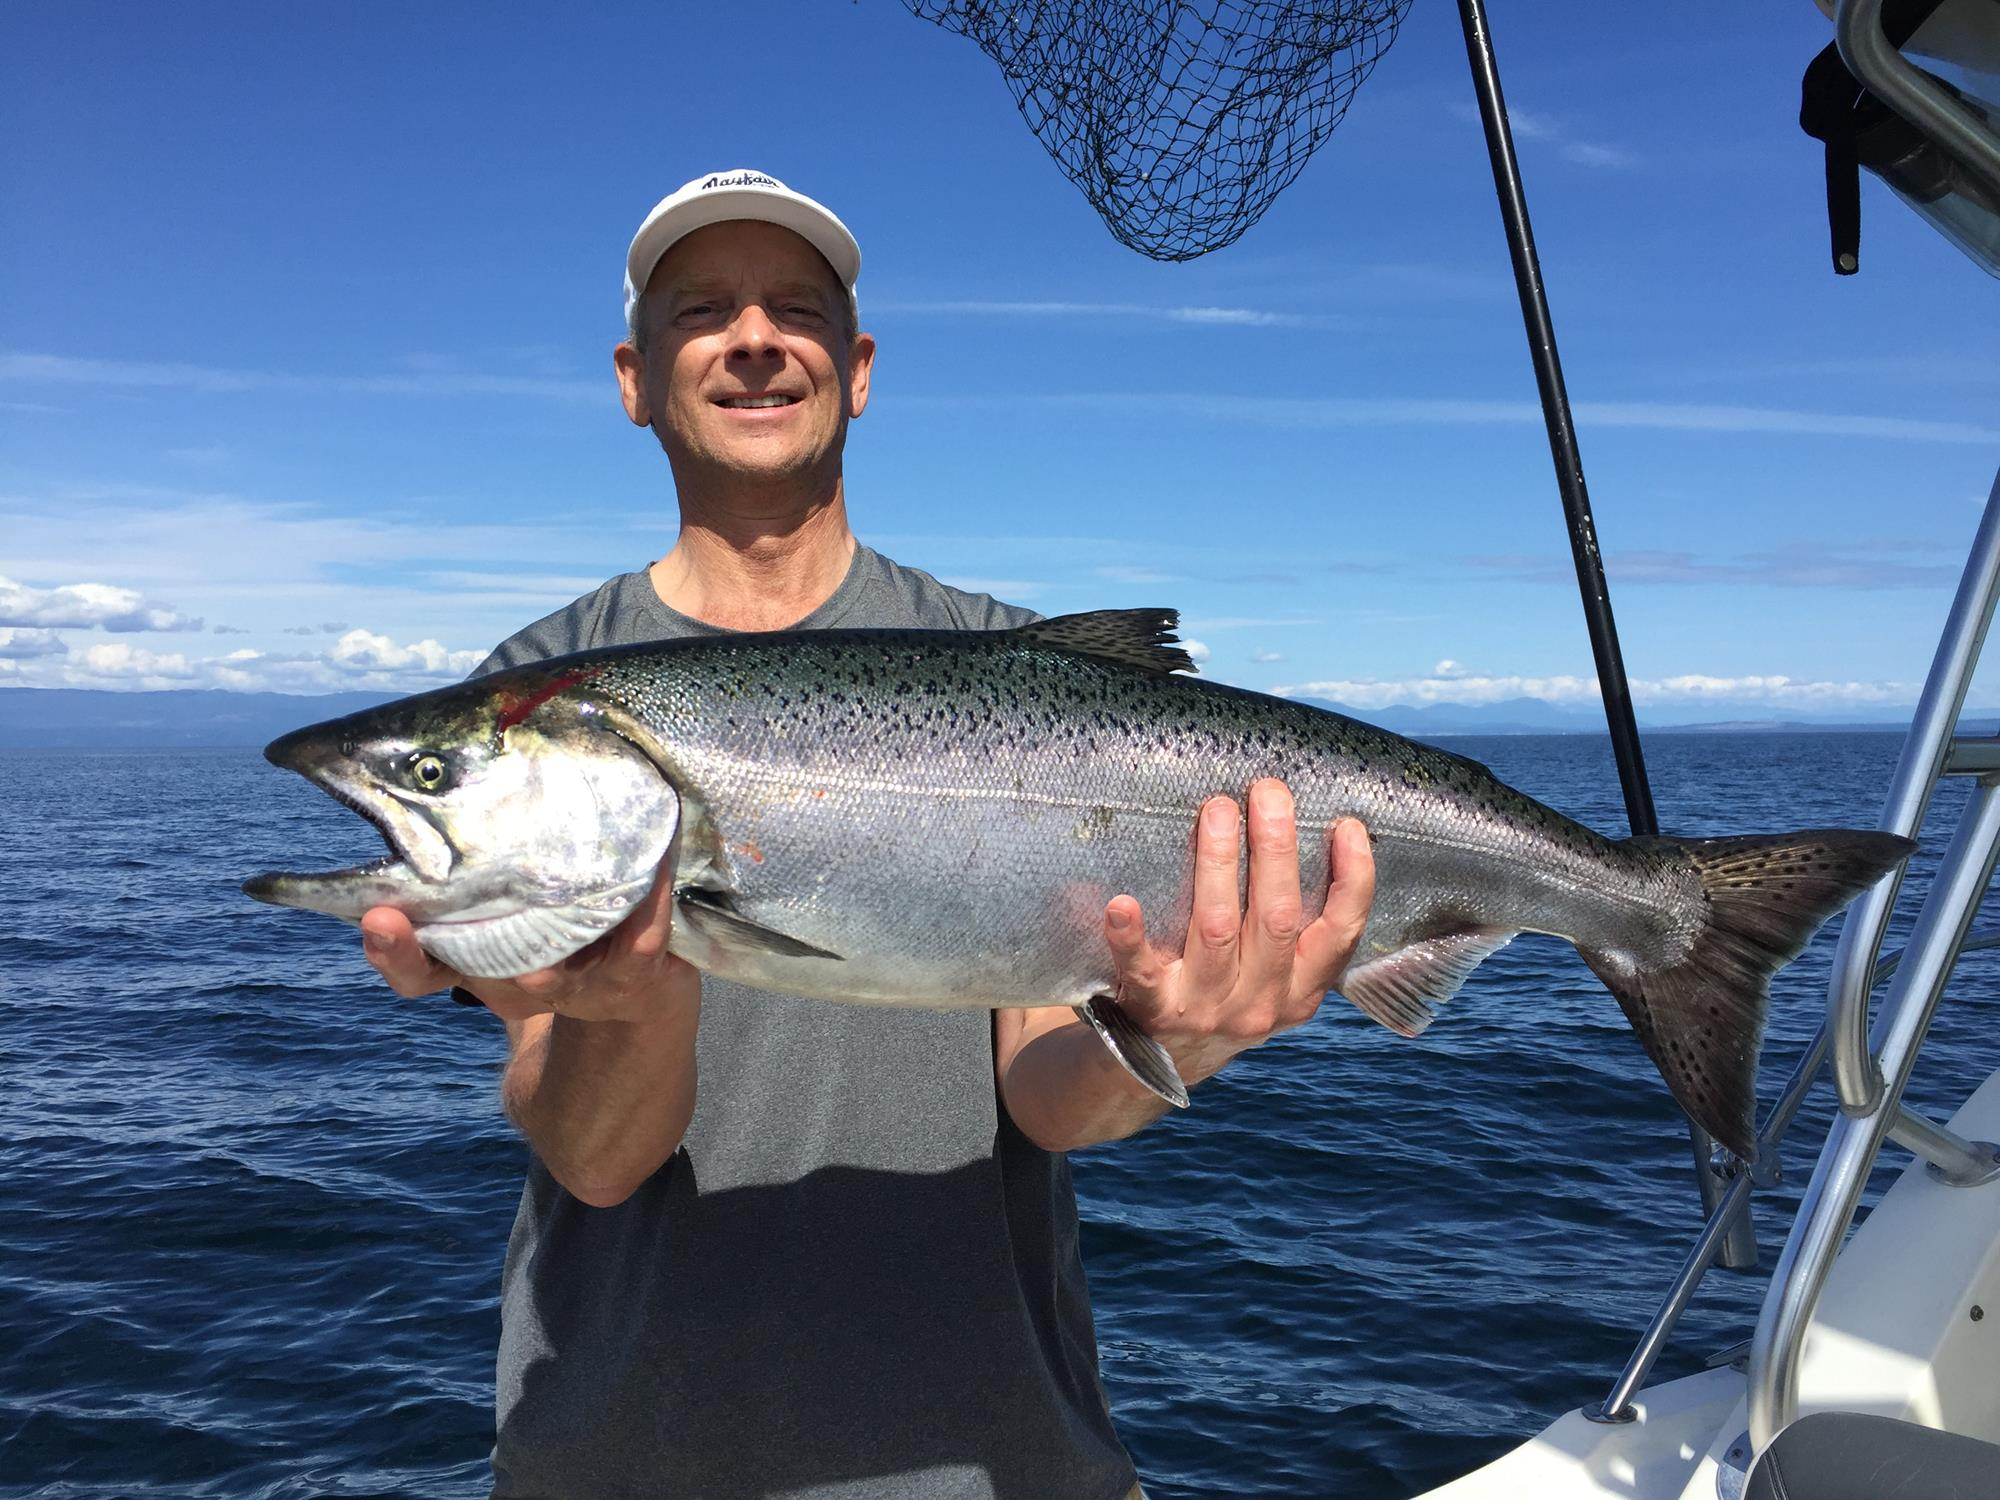 Img 0439 2000x1500 cliff 39 s chinook charters for California fishing license 2017